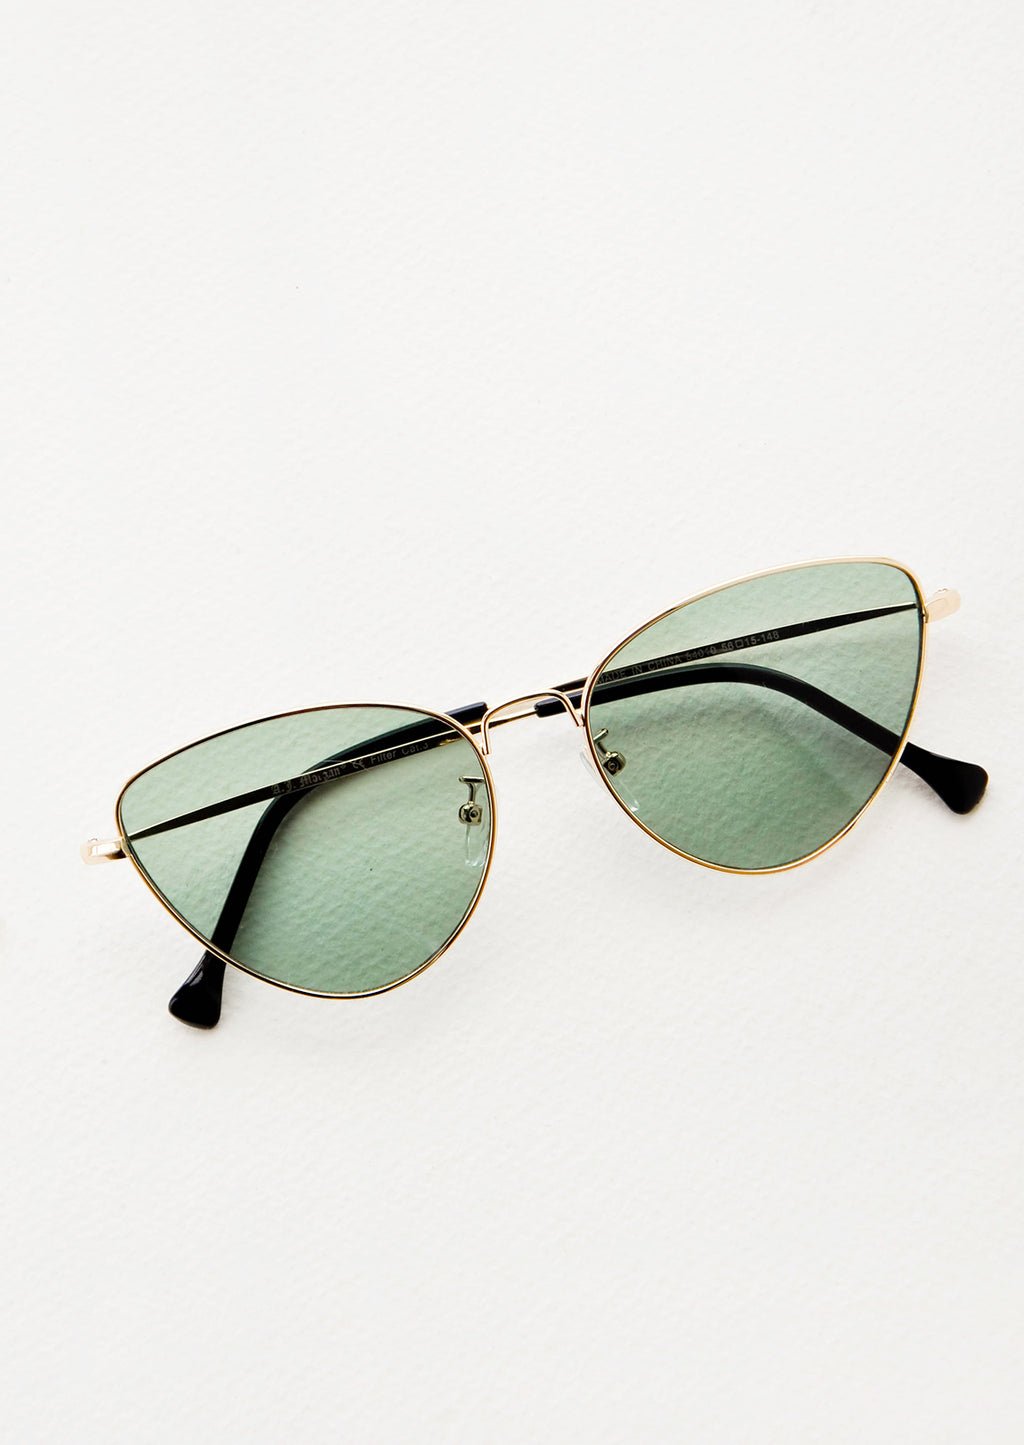 1: Sweet Surrender Sunglasses